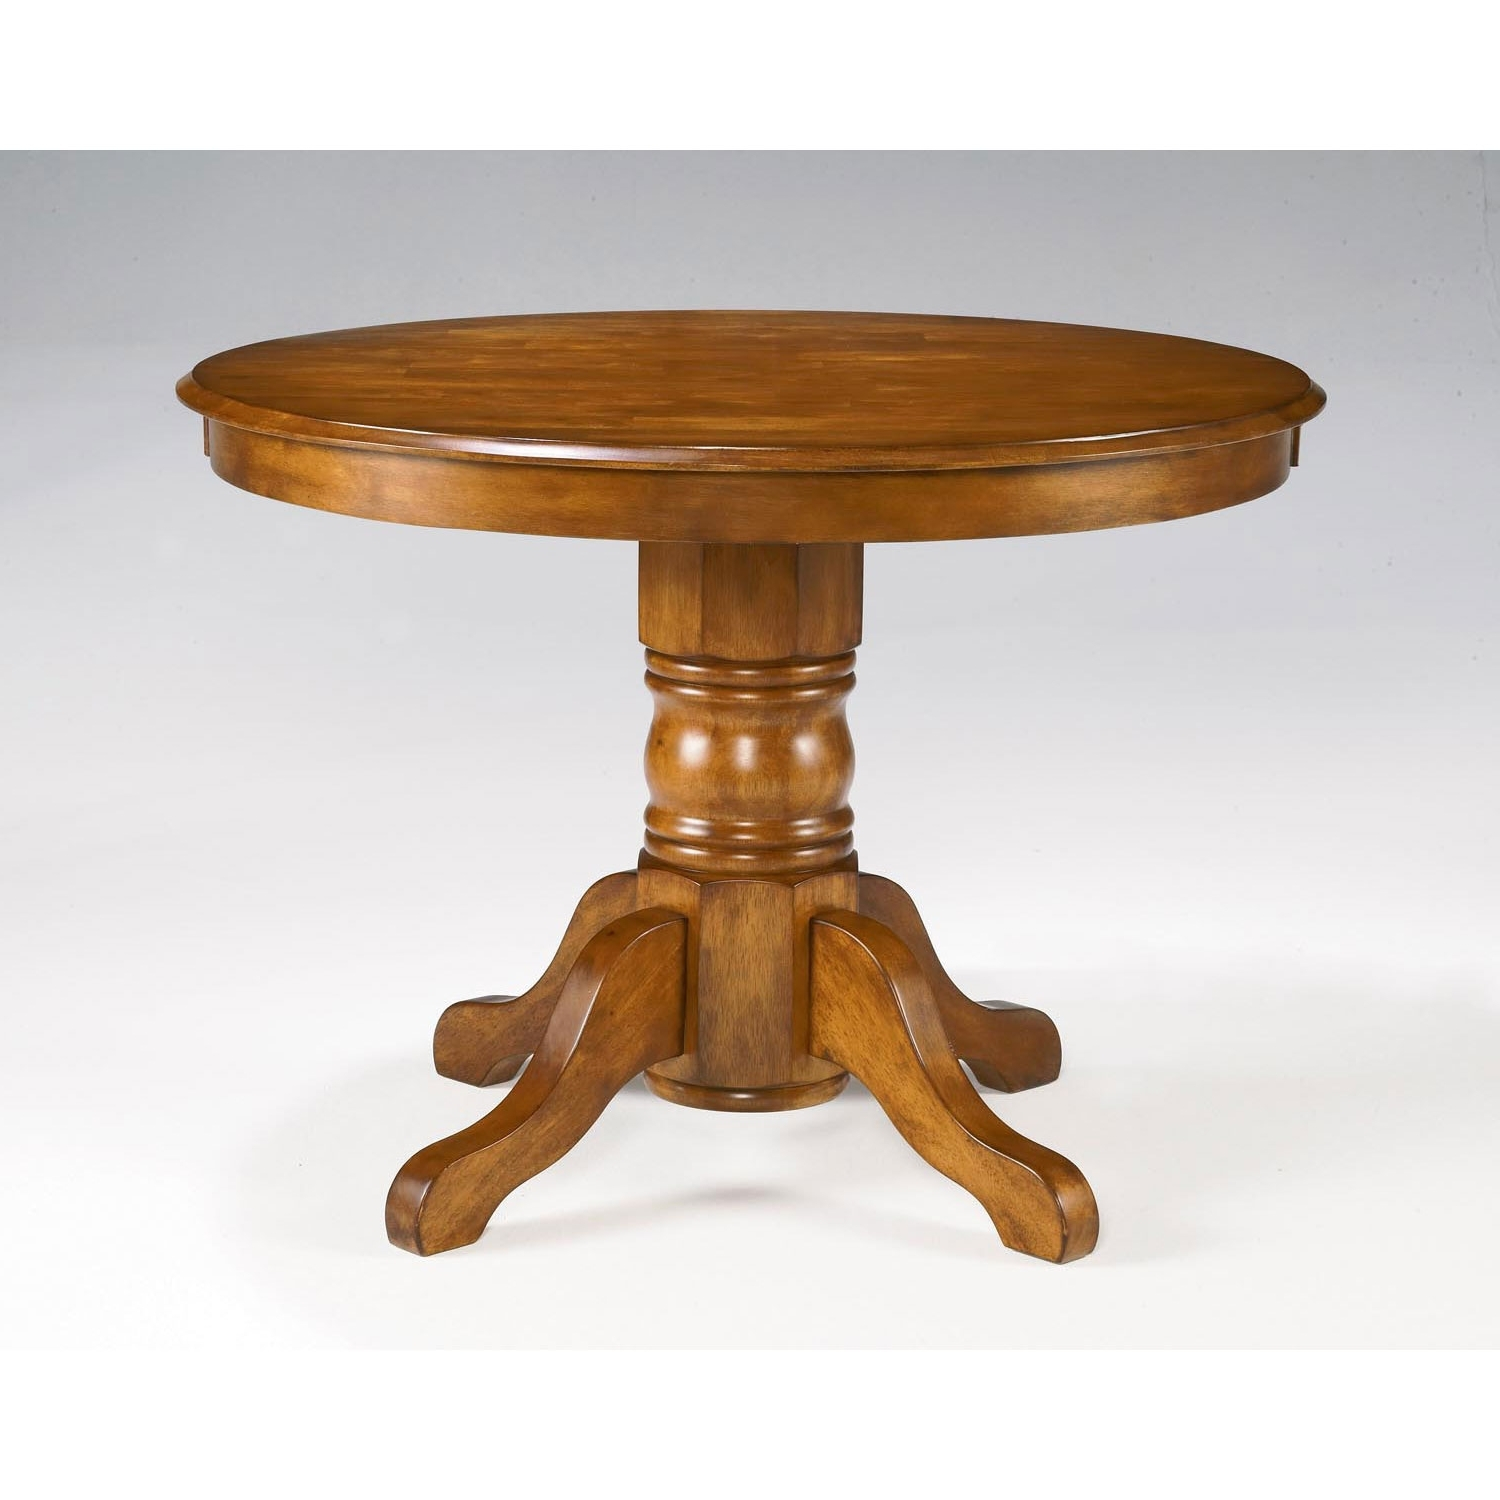 Circular Oak Dining Tables Throughout Most Current Home Styles Furniture Cottage Oak Round Pedestal Dining Table  (View 4 of 25)